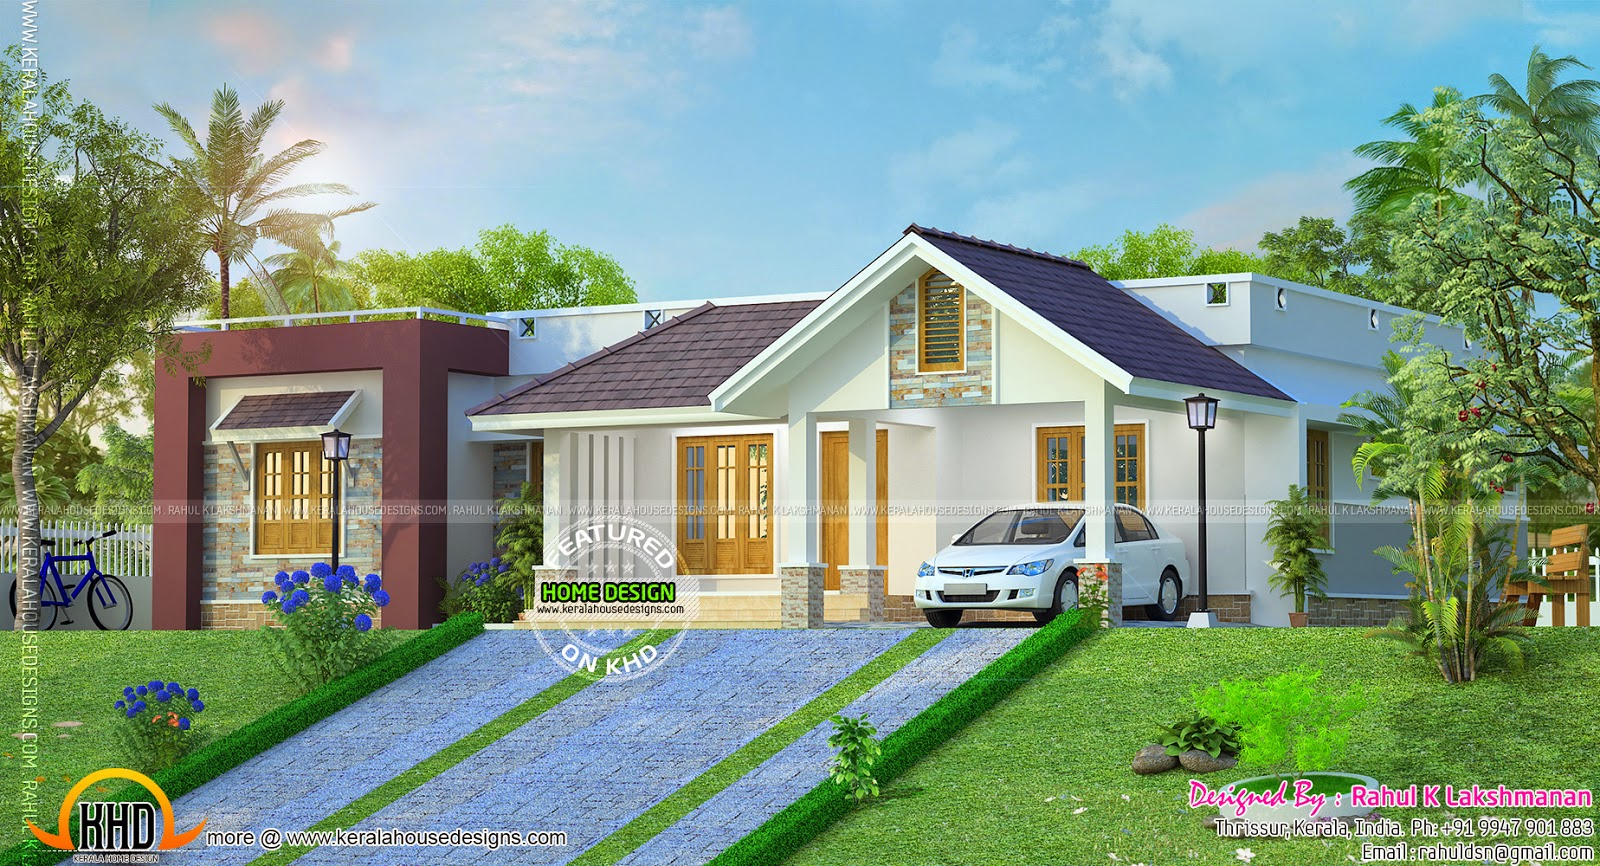 Hillside home plan kerala home design and floor plans for Hillside cabin plans